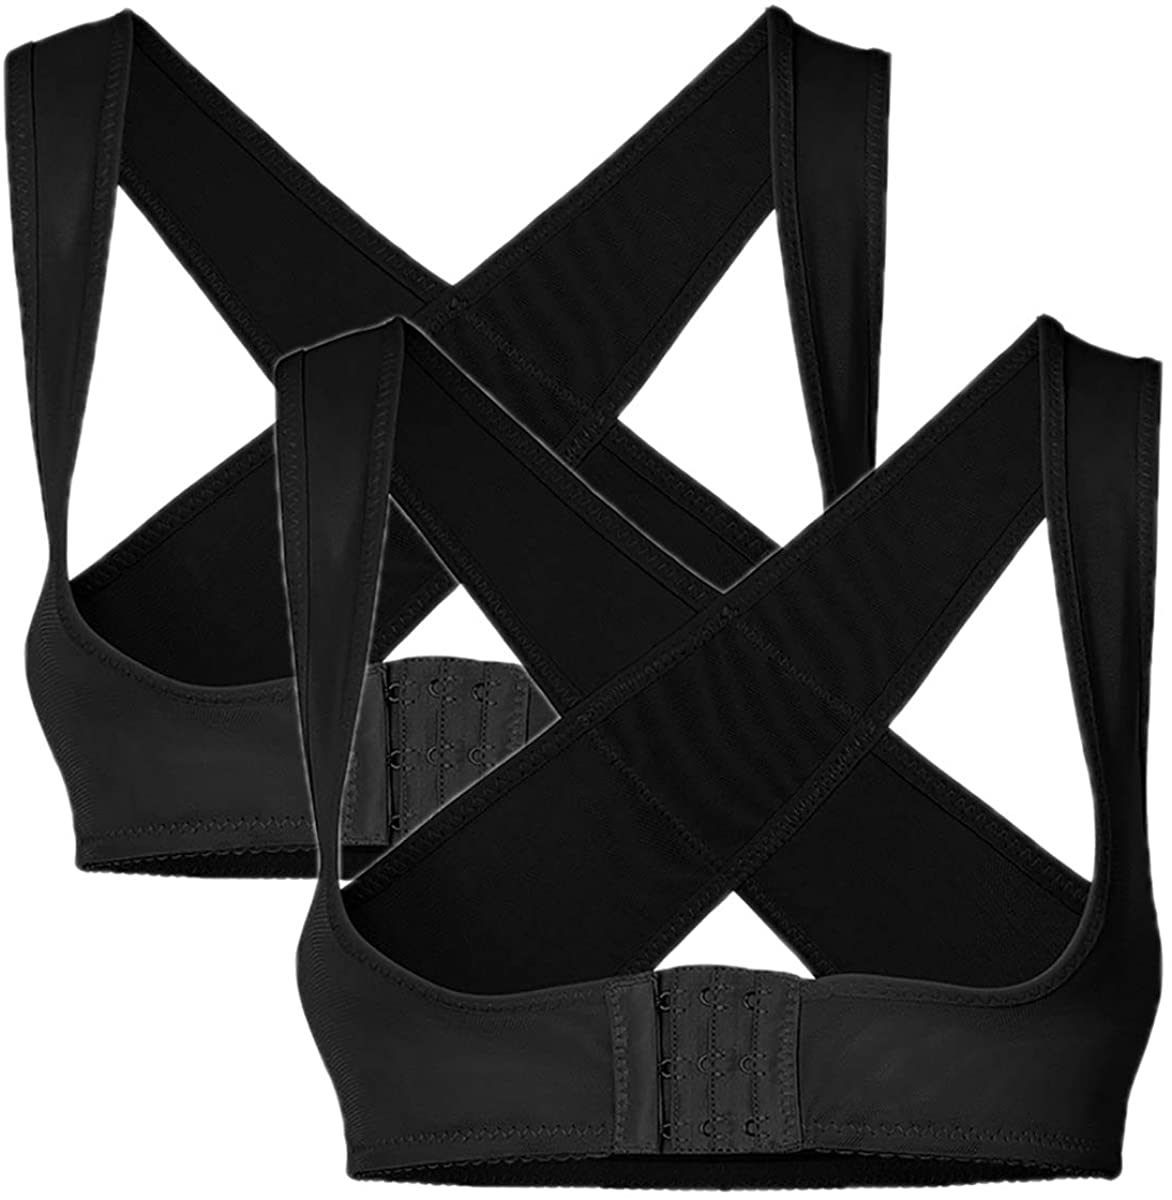 PRETTYWELL Women's Cross Back Posture Corrector Push up Bra Chest Support 2 Pack NY090 (2Black, L)